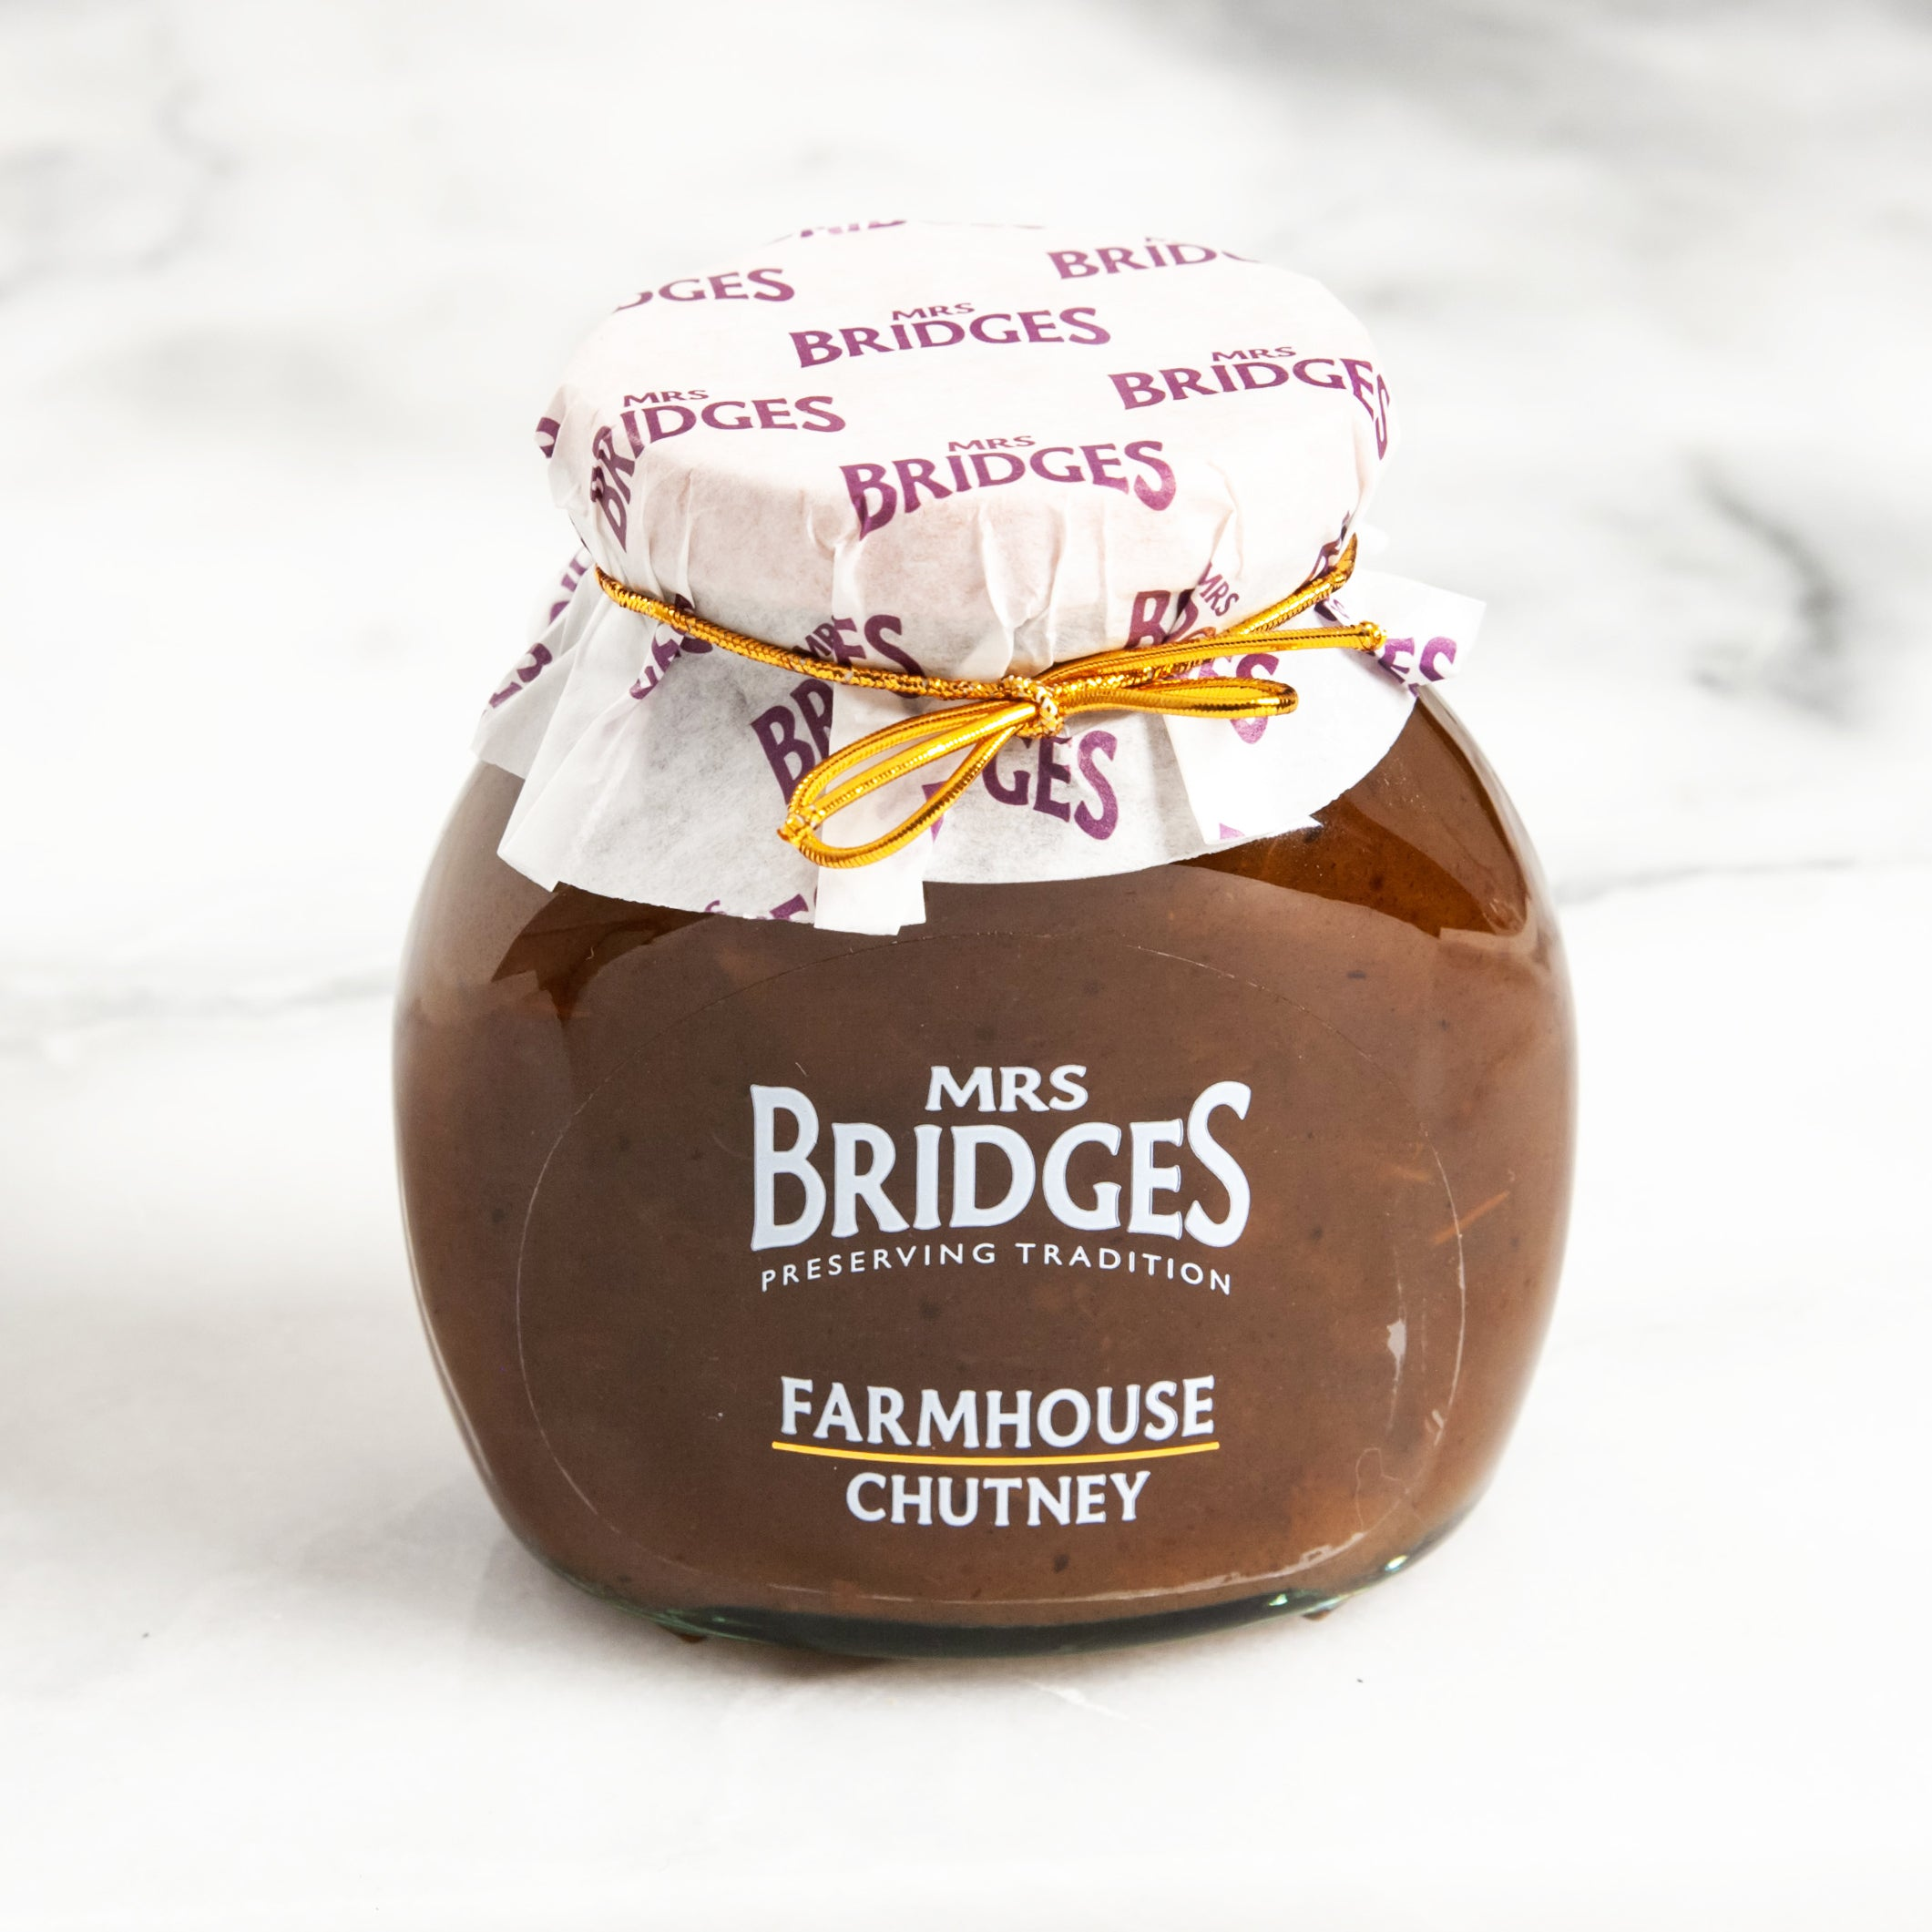 Mrs Bridges Farmhouse Chutney